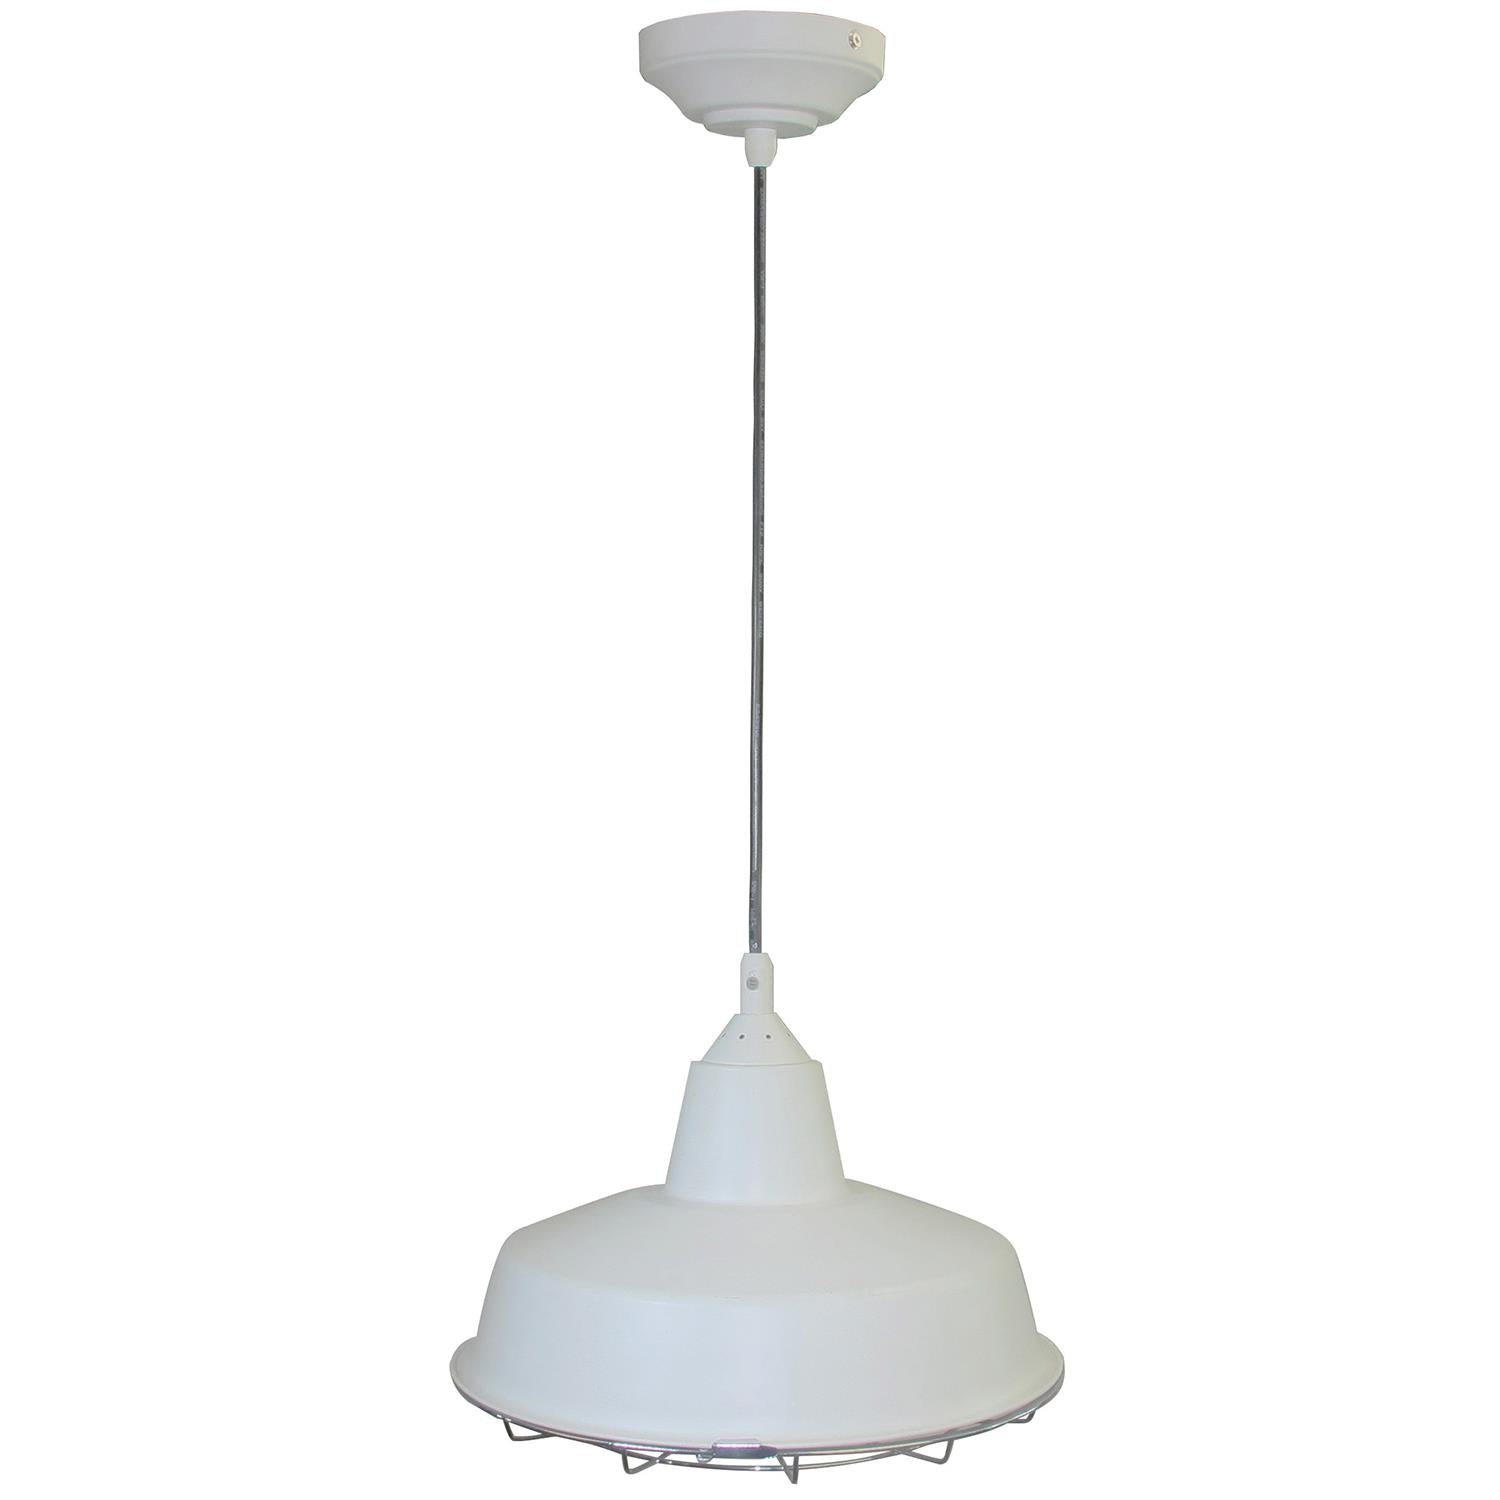 SUNLITE 13w 12in LED Utility Ceiling Shades in White - 3000K